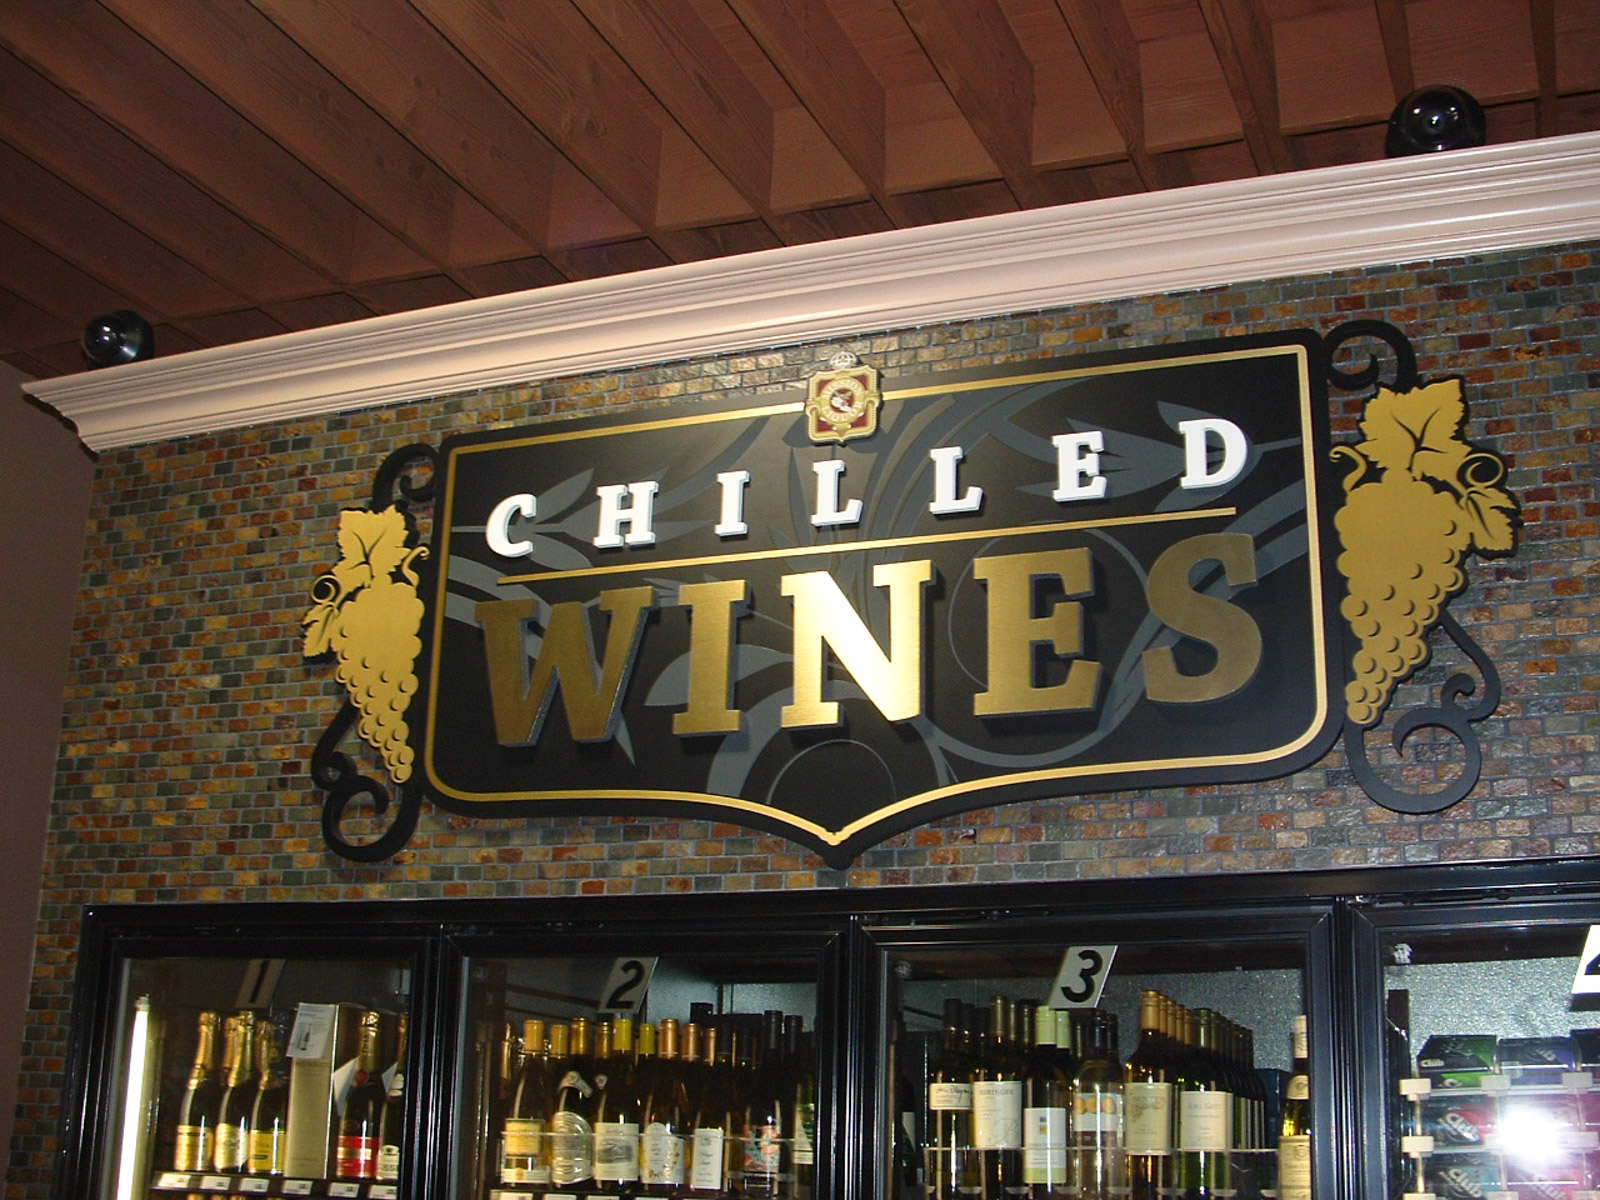 Mission Wine & Spirits - Chilled Wines Sign